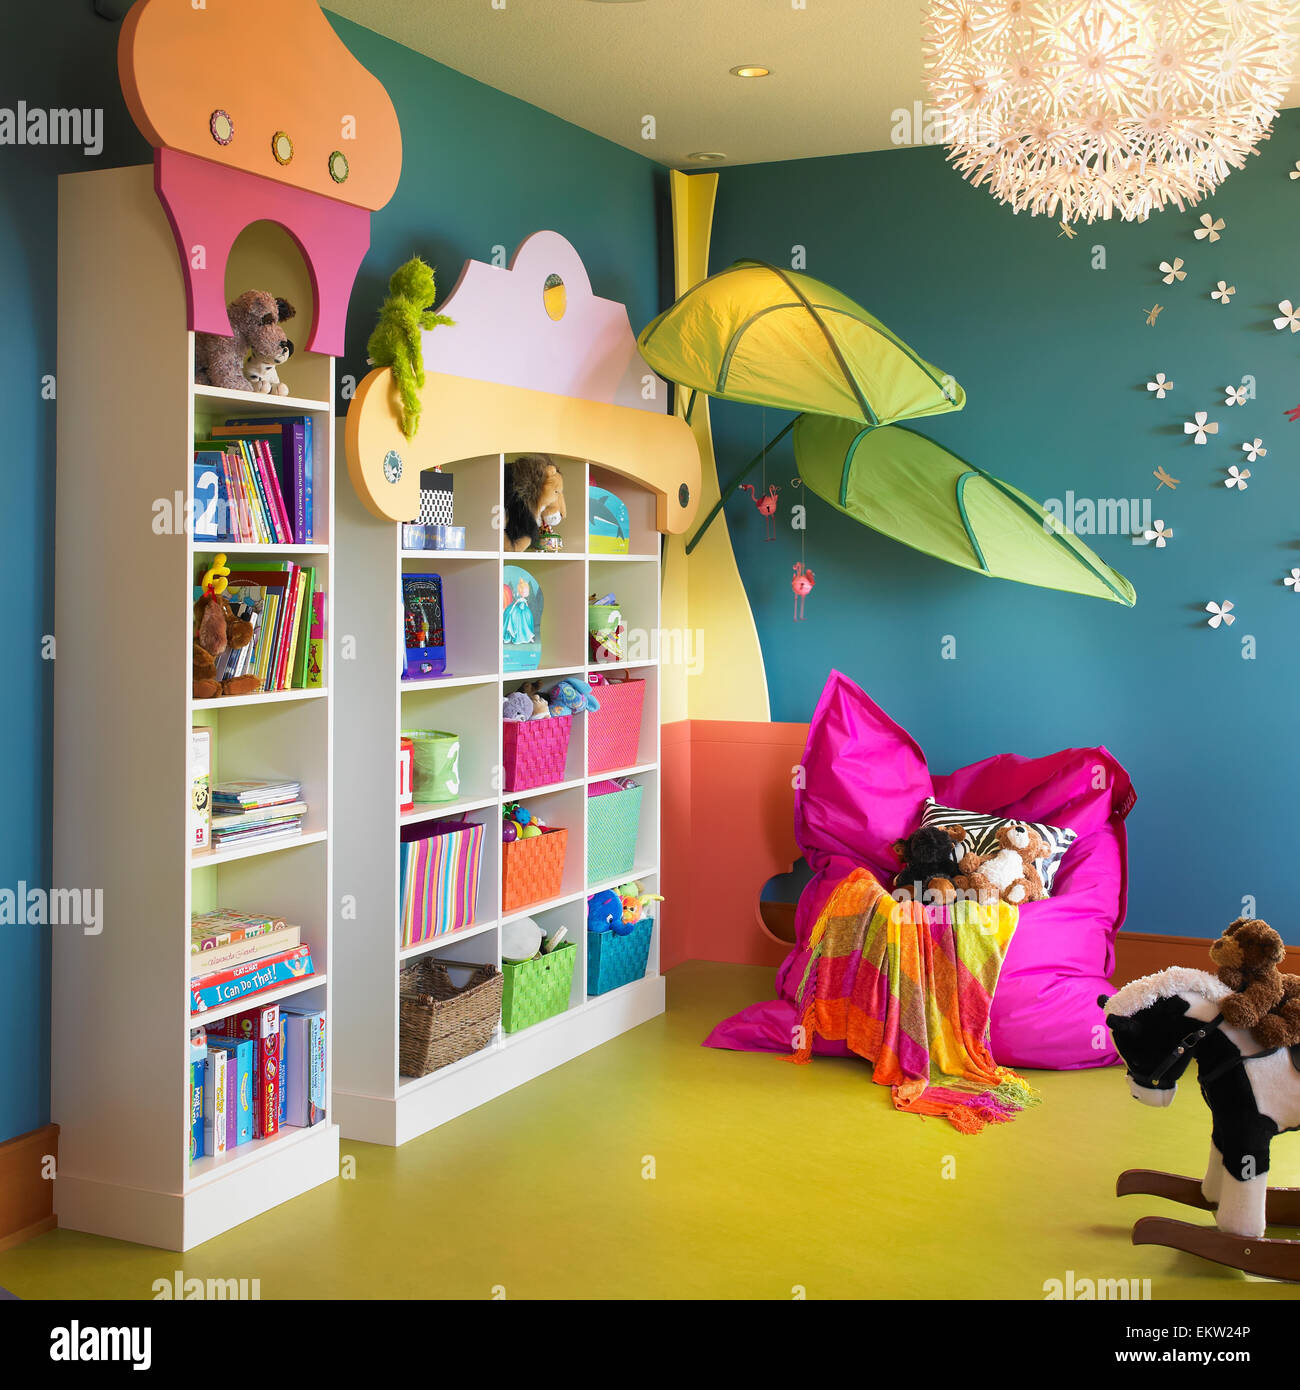 Childs Playroom With Bookshelves Bean Bag Chair And Toys